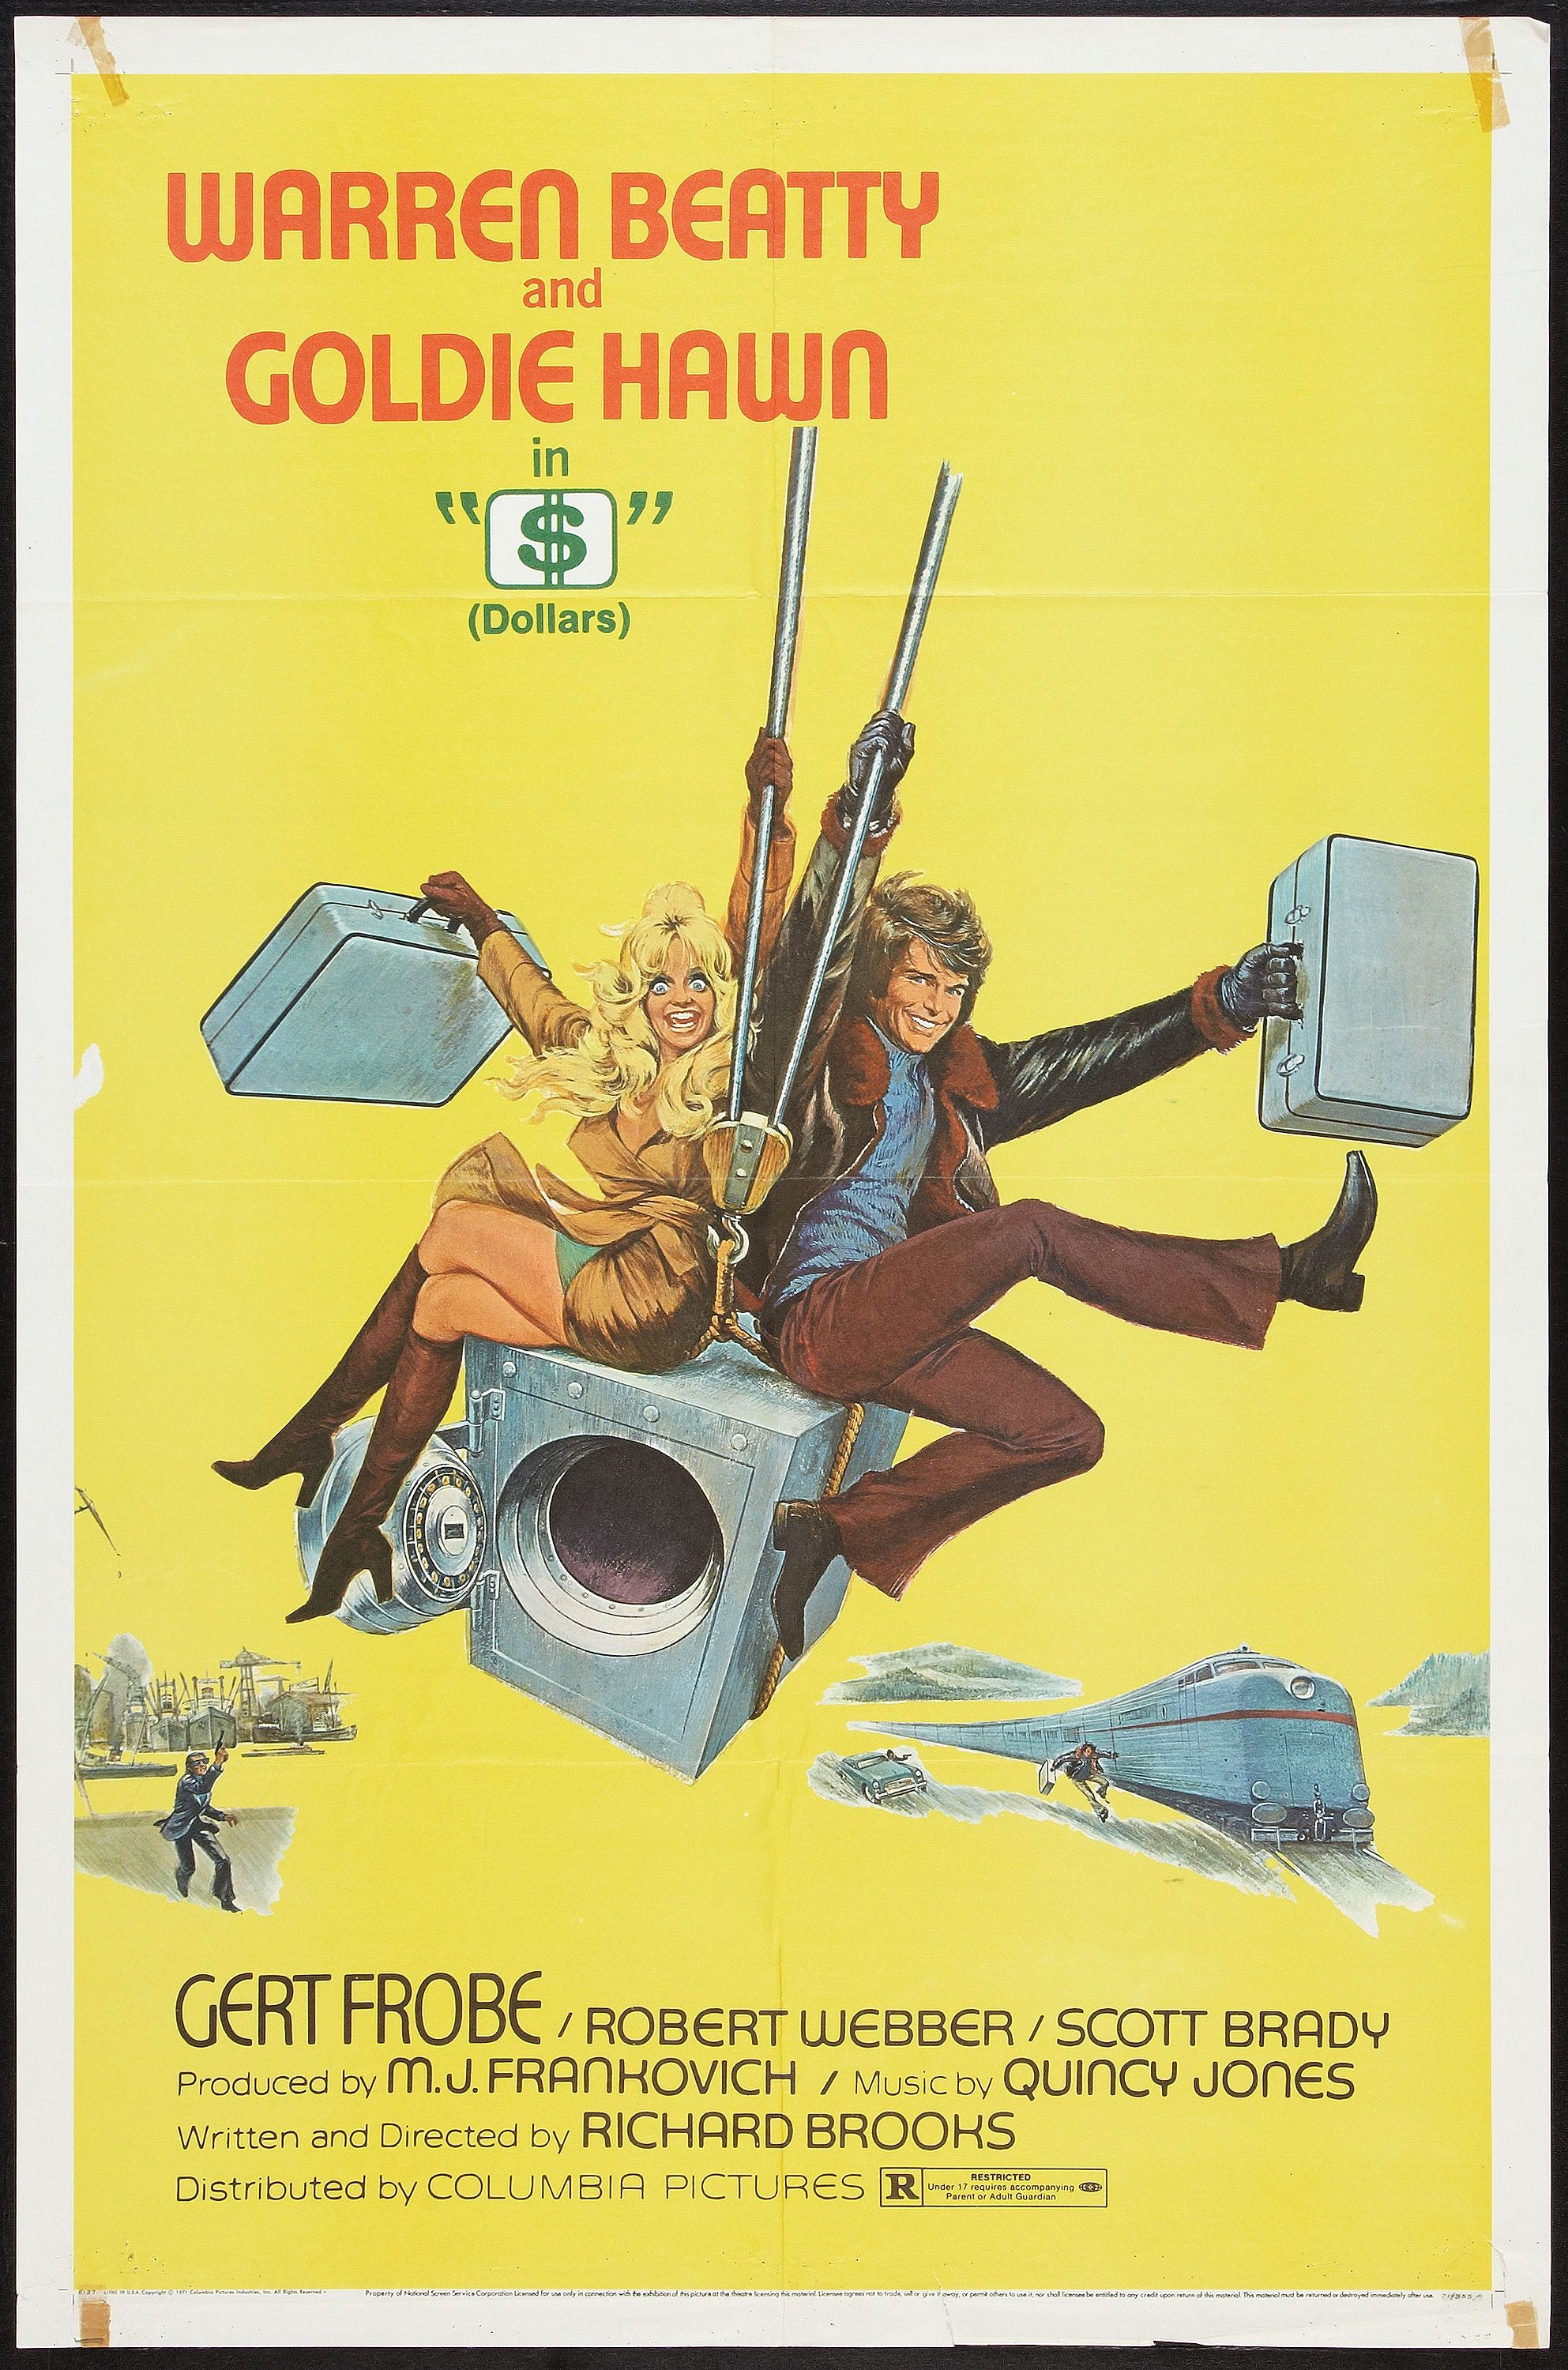 """$""  (Dollars)(1971) Stars: Warren Beatty, Goldie Hawn, Gert Fröbe, Robert Webber, Scott Brady ~ Director: Richard Brooks"